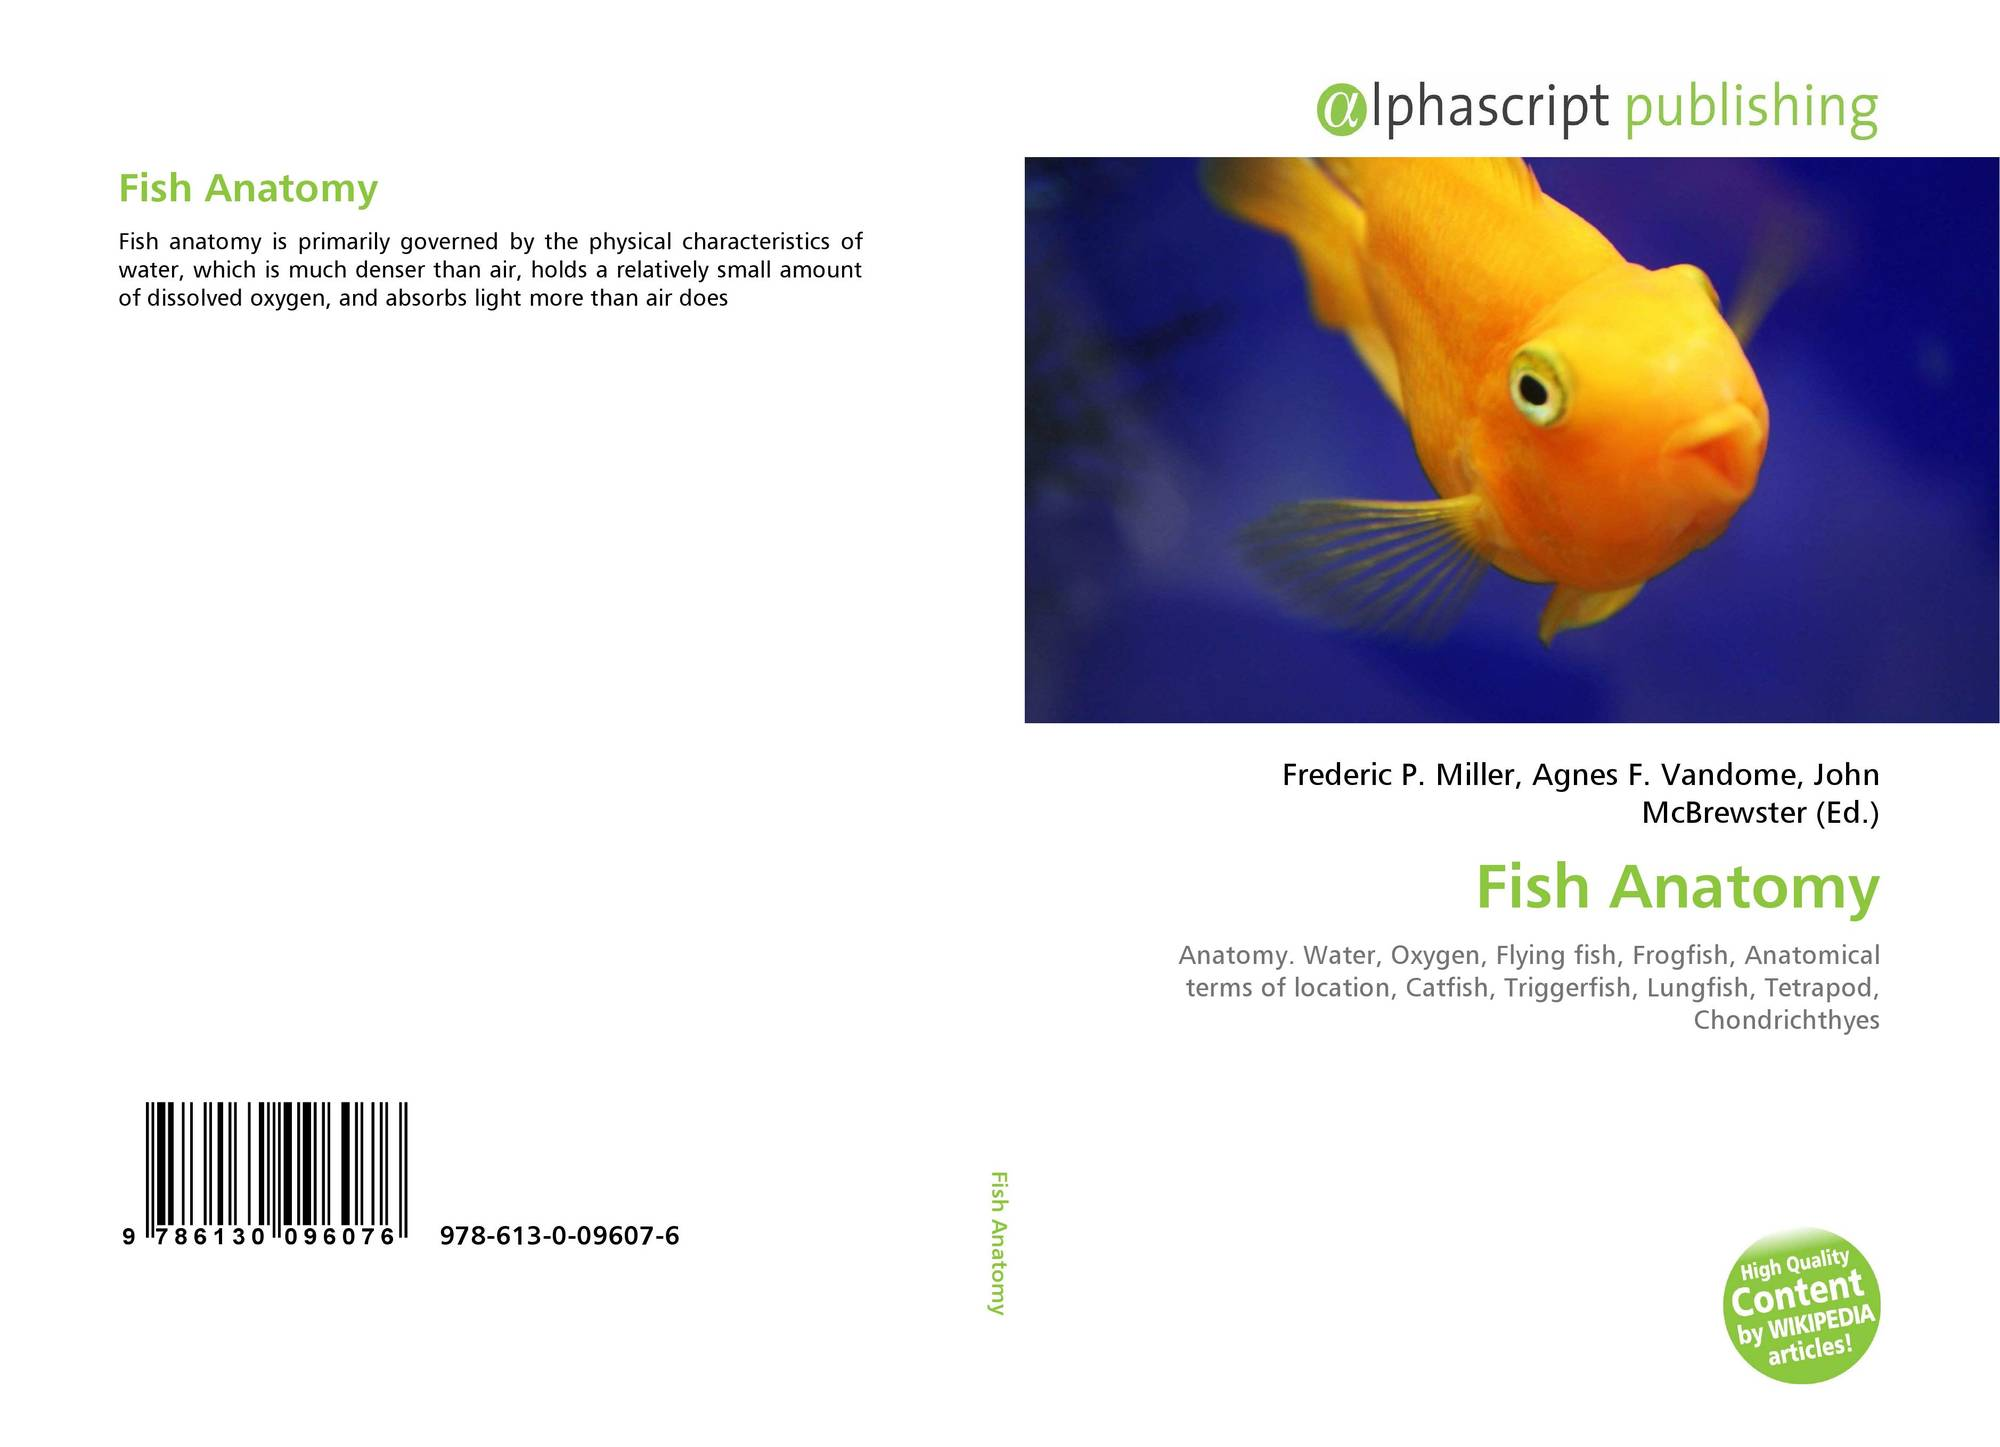 Fish Anatomy, 978-613-0-09607-6, 6130096070 ,9786130096076